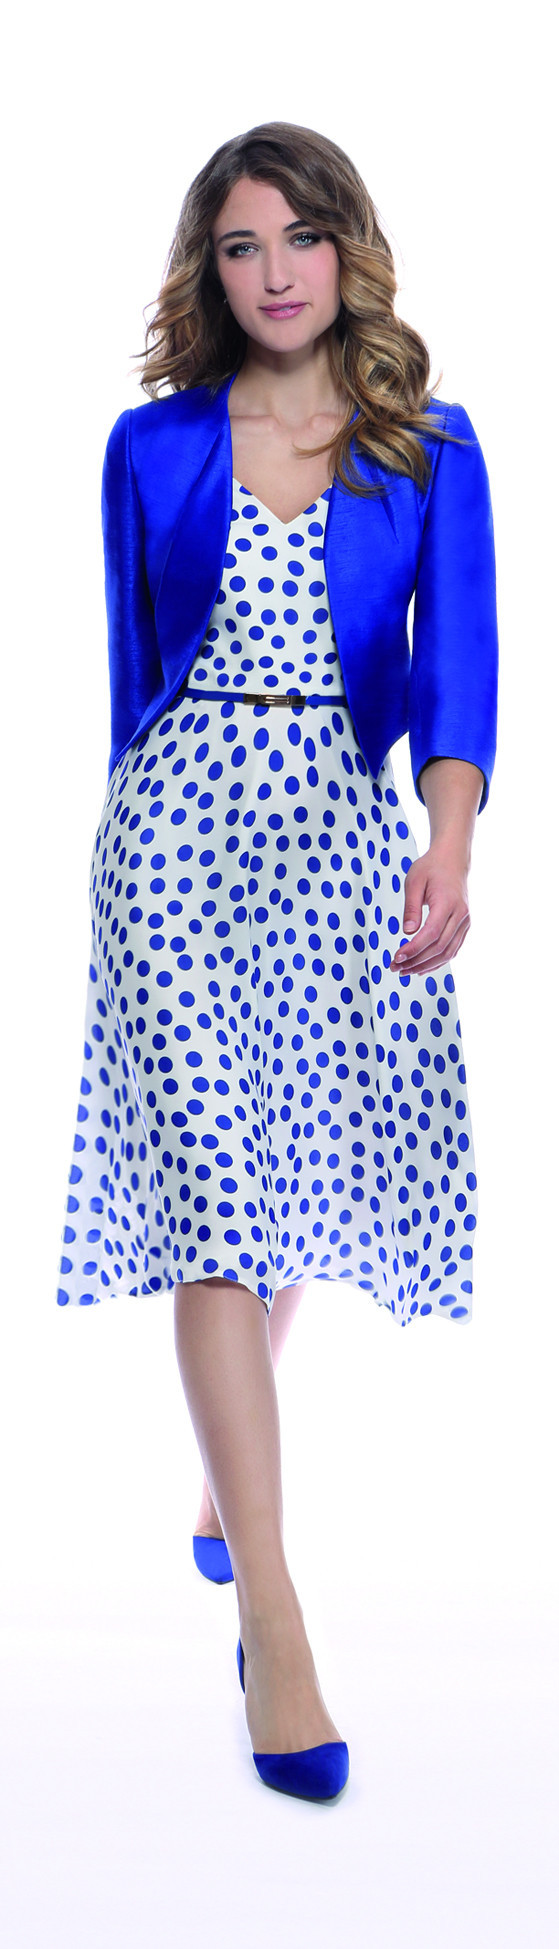 Michaela Louisa White And Blue Spot Dress - length: below the knee; neckline: v-neck; sleeve style: sleeveless; pattern: polka dot; waist detail: belted waist/tie at waist/drawstring; predominant colour: white; secondary colour: royal blue; occasions: evening; fit: fitted at waist & bust; style: fit & flare; fibres: polyester/polyamide - 100%; sleeve length: sleeveless; pattern type: fabric; texture group: other - light to midweight; multicoloured: multicoloured; season: s/s 2016; wardrobe: event